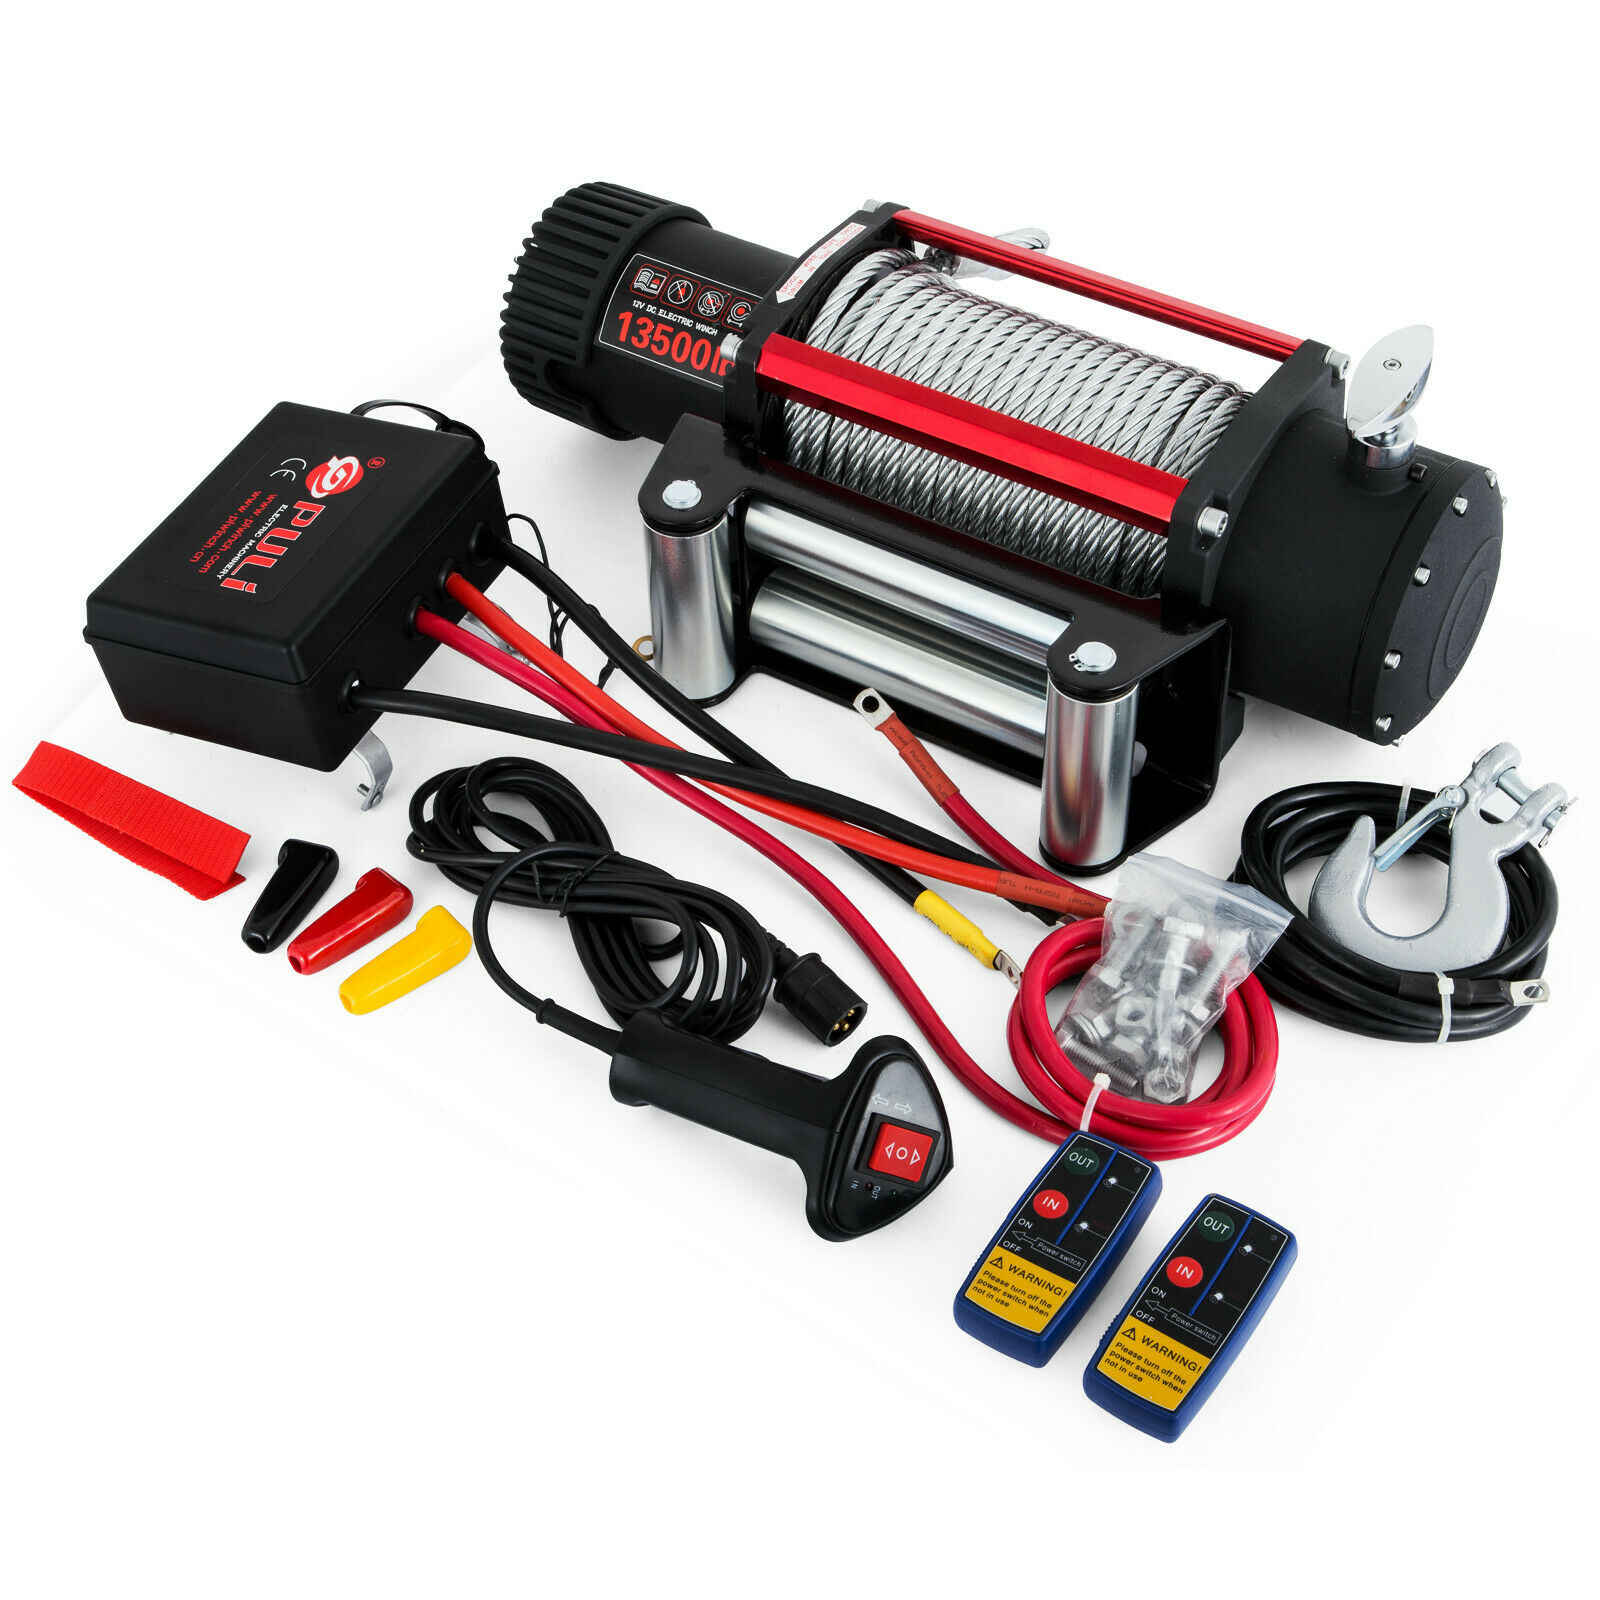 Motor Electric Winch Rope 12V Traction 6123KG 13500lbs Boat Rope Cable Winch Series Wound